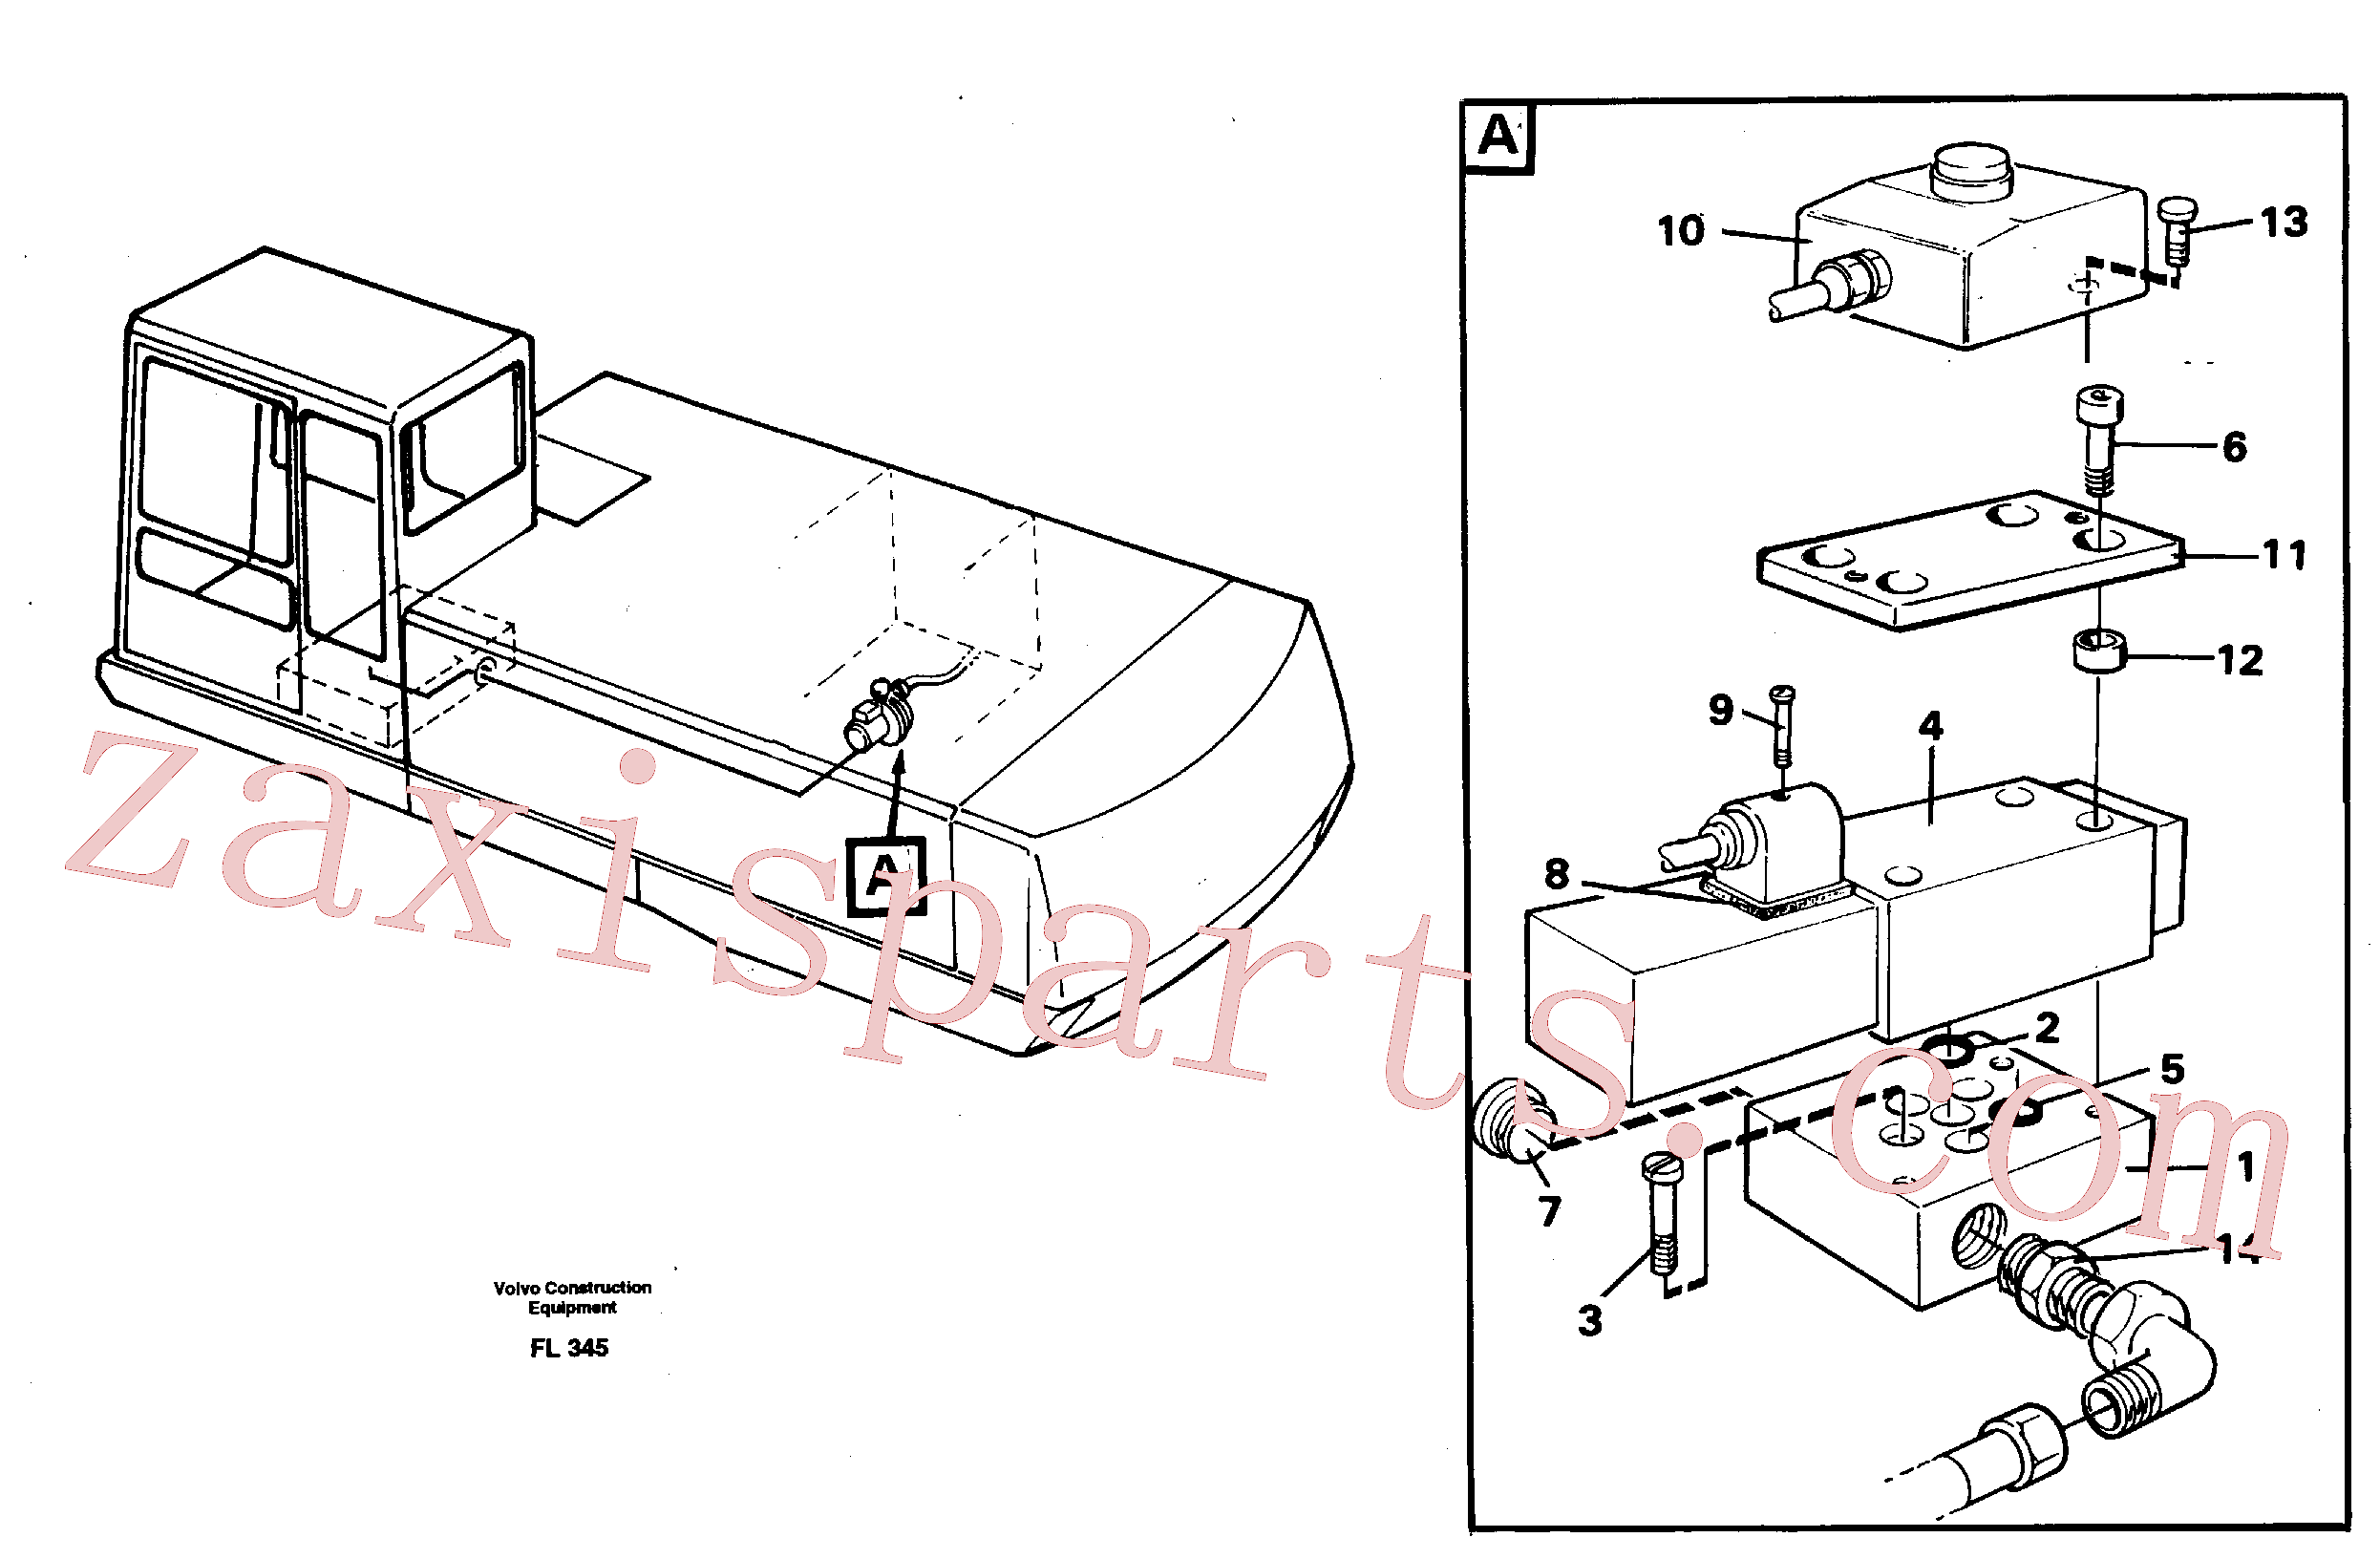 VOE14214602 for Volvo Overfilling guard(FL345 assembly)